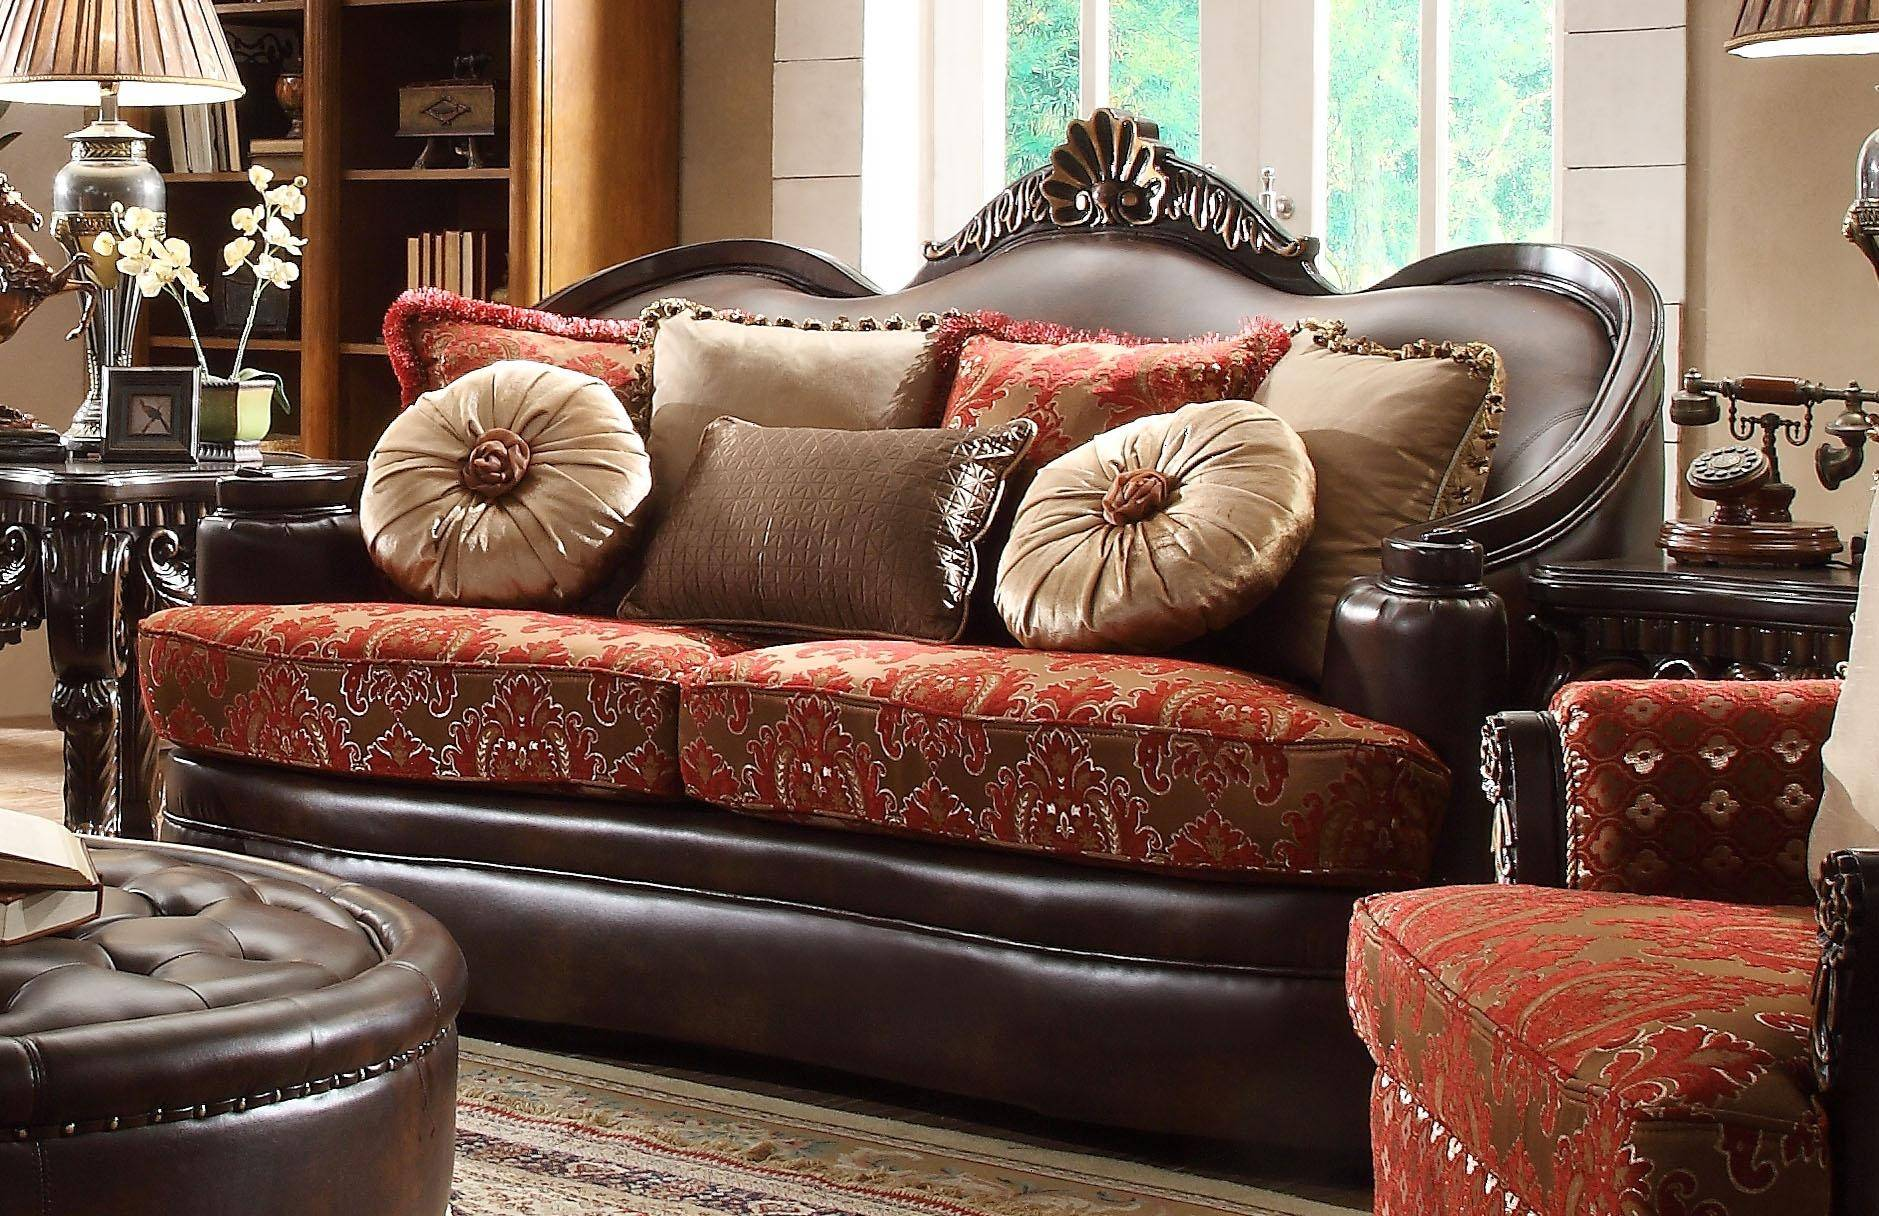 Homey Design HD-6903 Victorian Luxury Rich Brown Leather Red ...